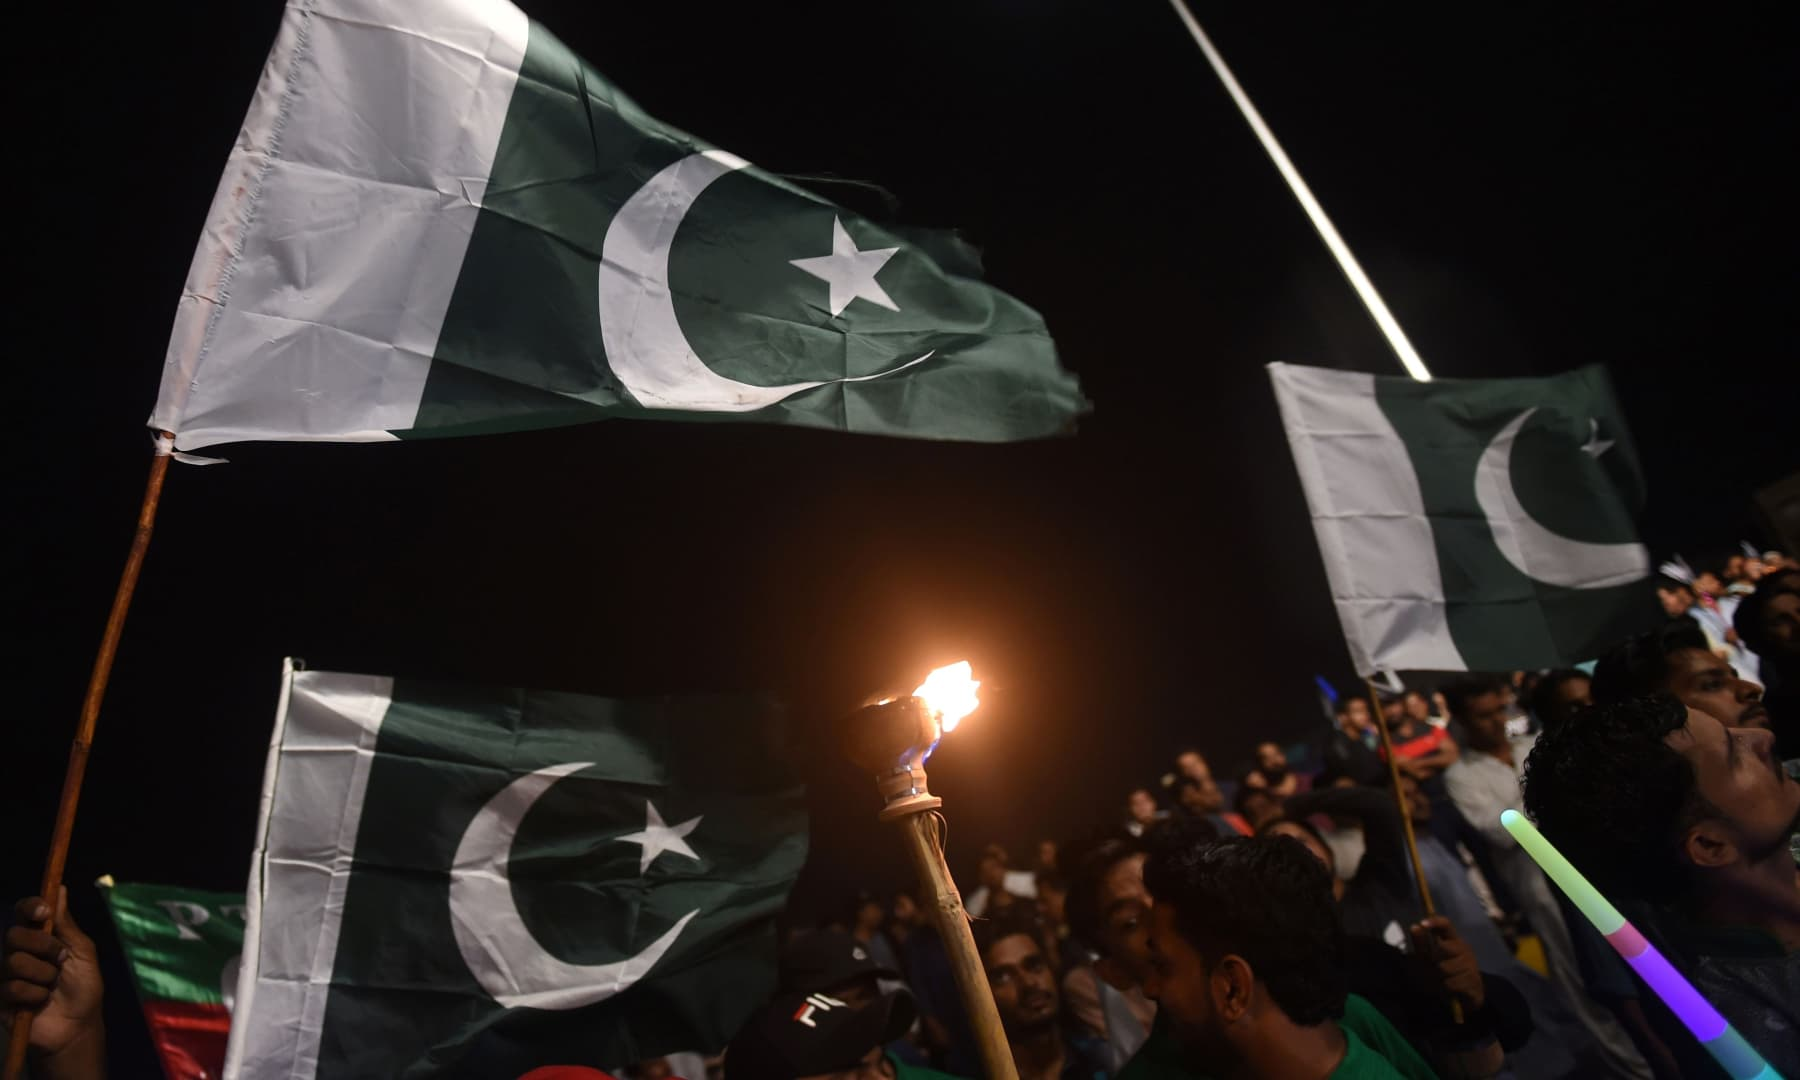 People hold national flags as they gather during Independence Day celebrations in Karachi on August 14. — AFP